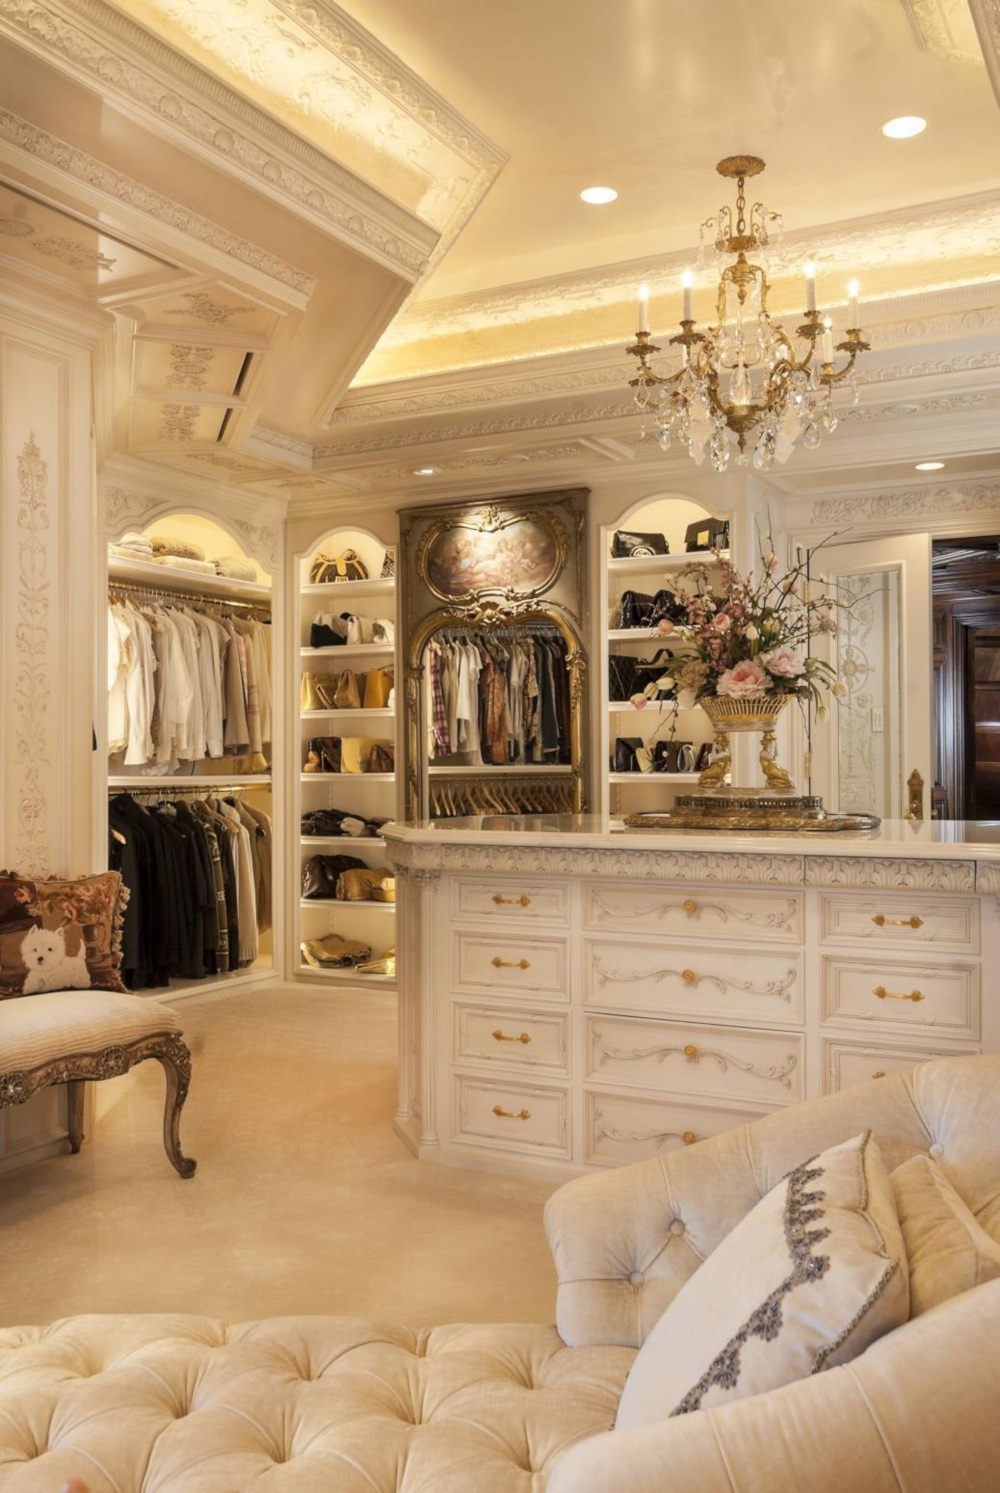 5 Luxury Closet Decor Ideas chandeliers 10 Beautiful Chandeliers for a Hotel Design 5 Luxury Closet Decor Ideas 05 chandeliers 10 Beautiful Chandeliers for a Hotel Design 5 Luxury Closet Decor Ideas 05